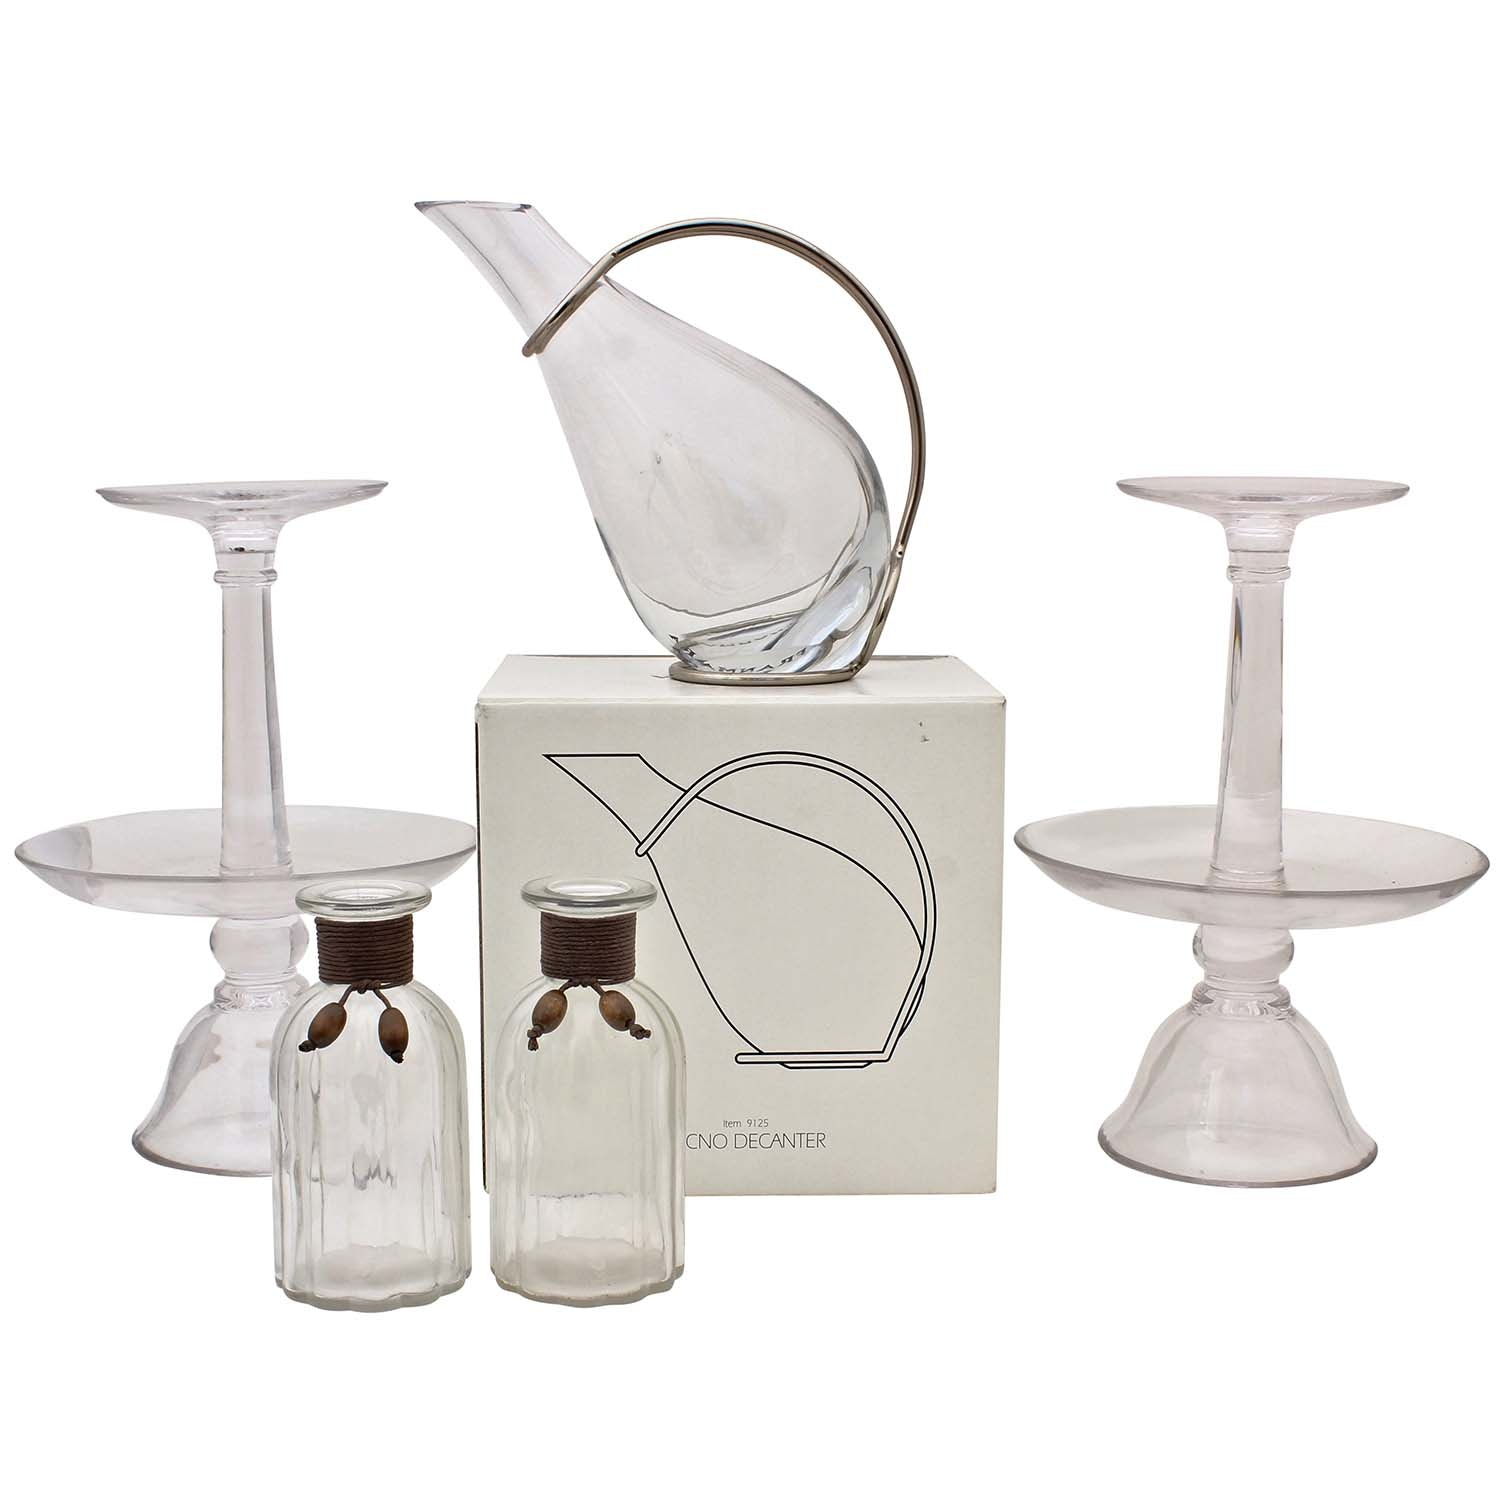 Clear Glassware Including Decanter, Candleholders and Decorative Jars